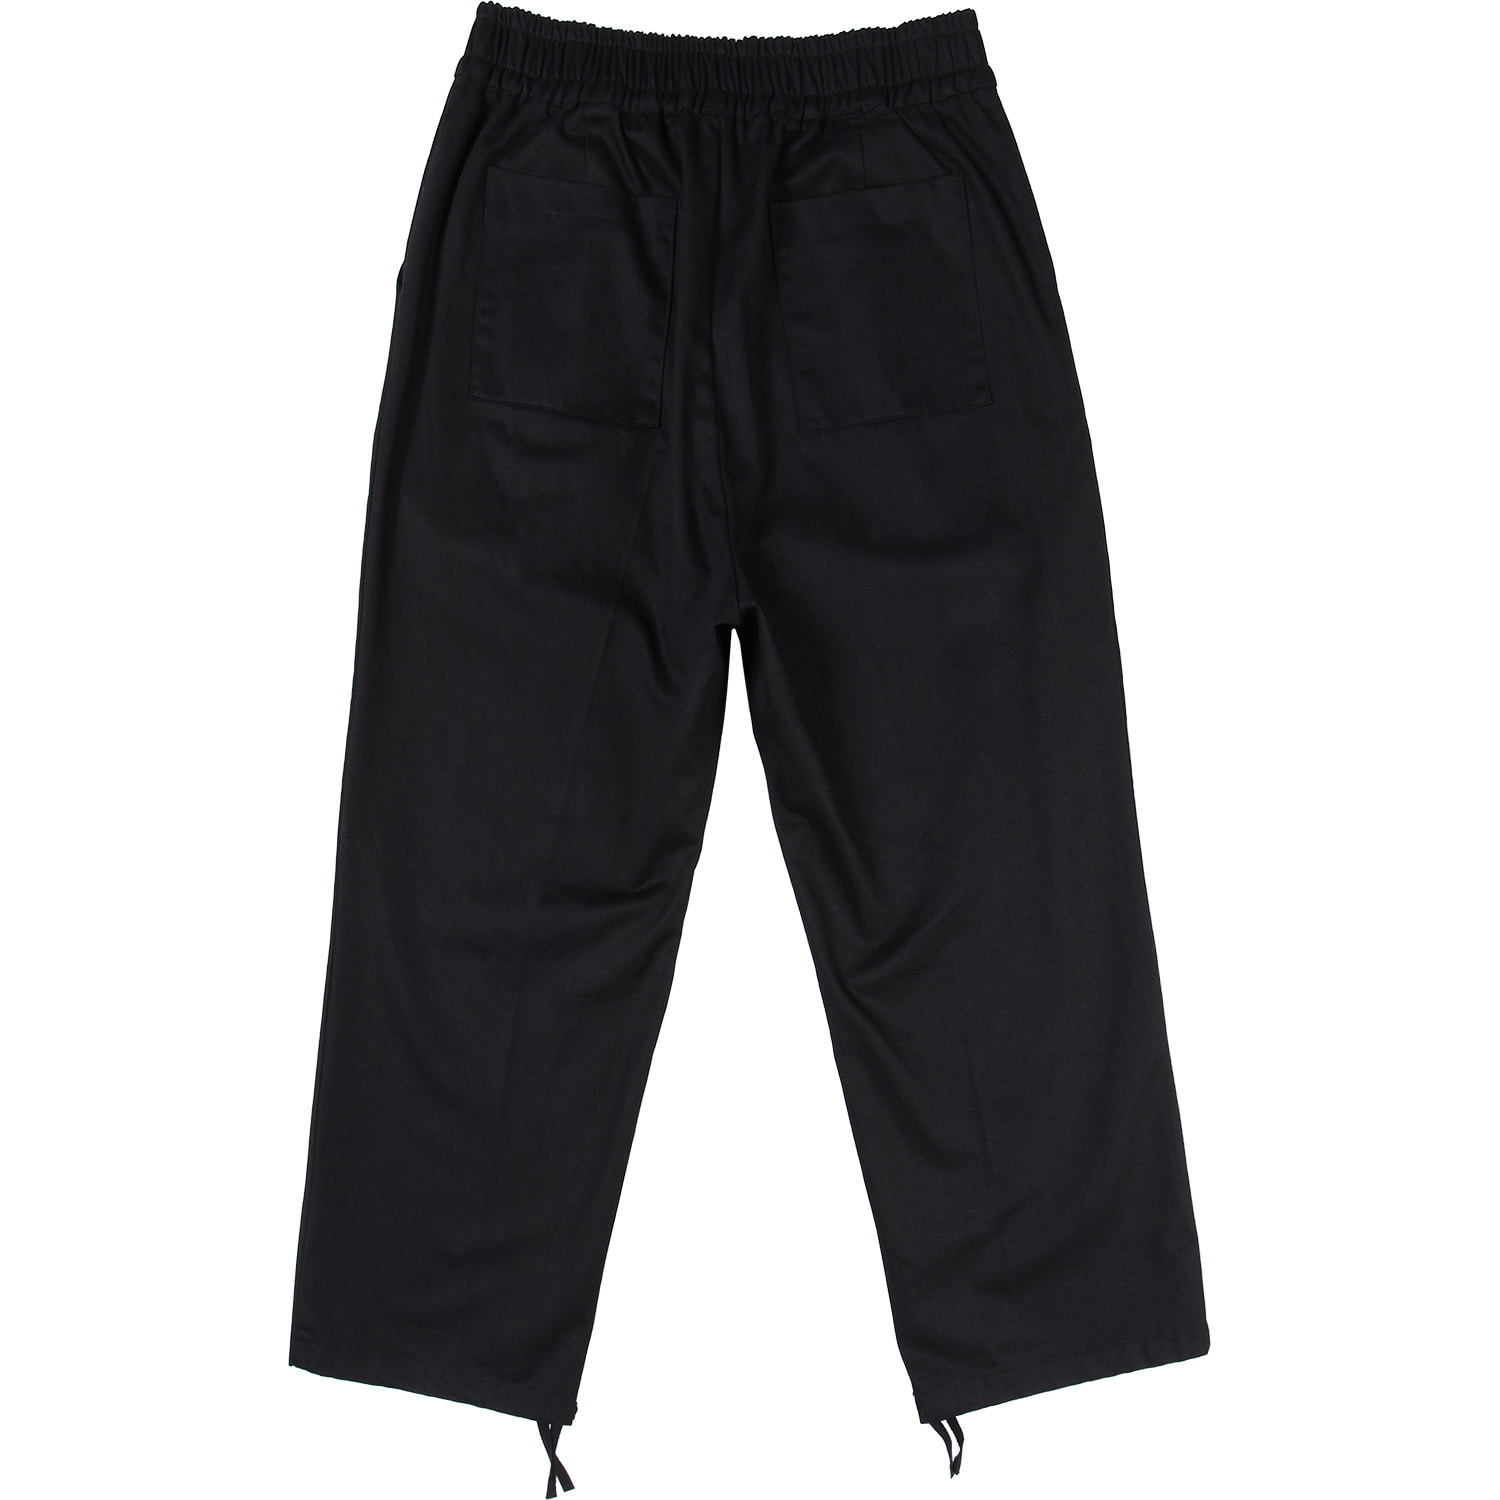 One Tuck Wide Pants Black [Black],NOT4NERD